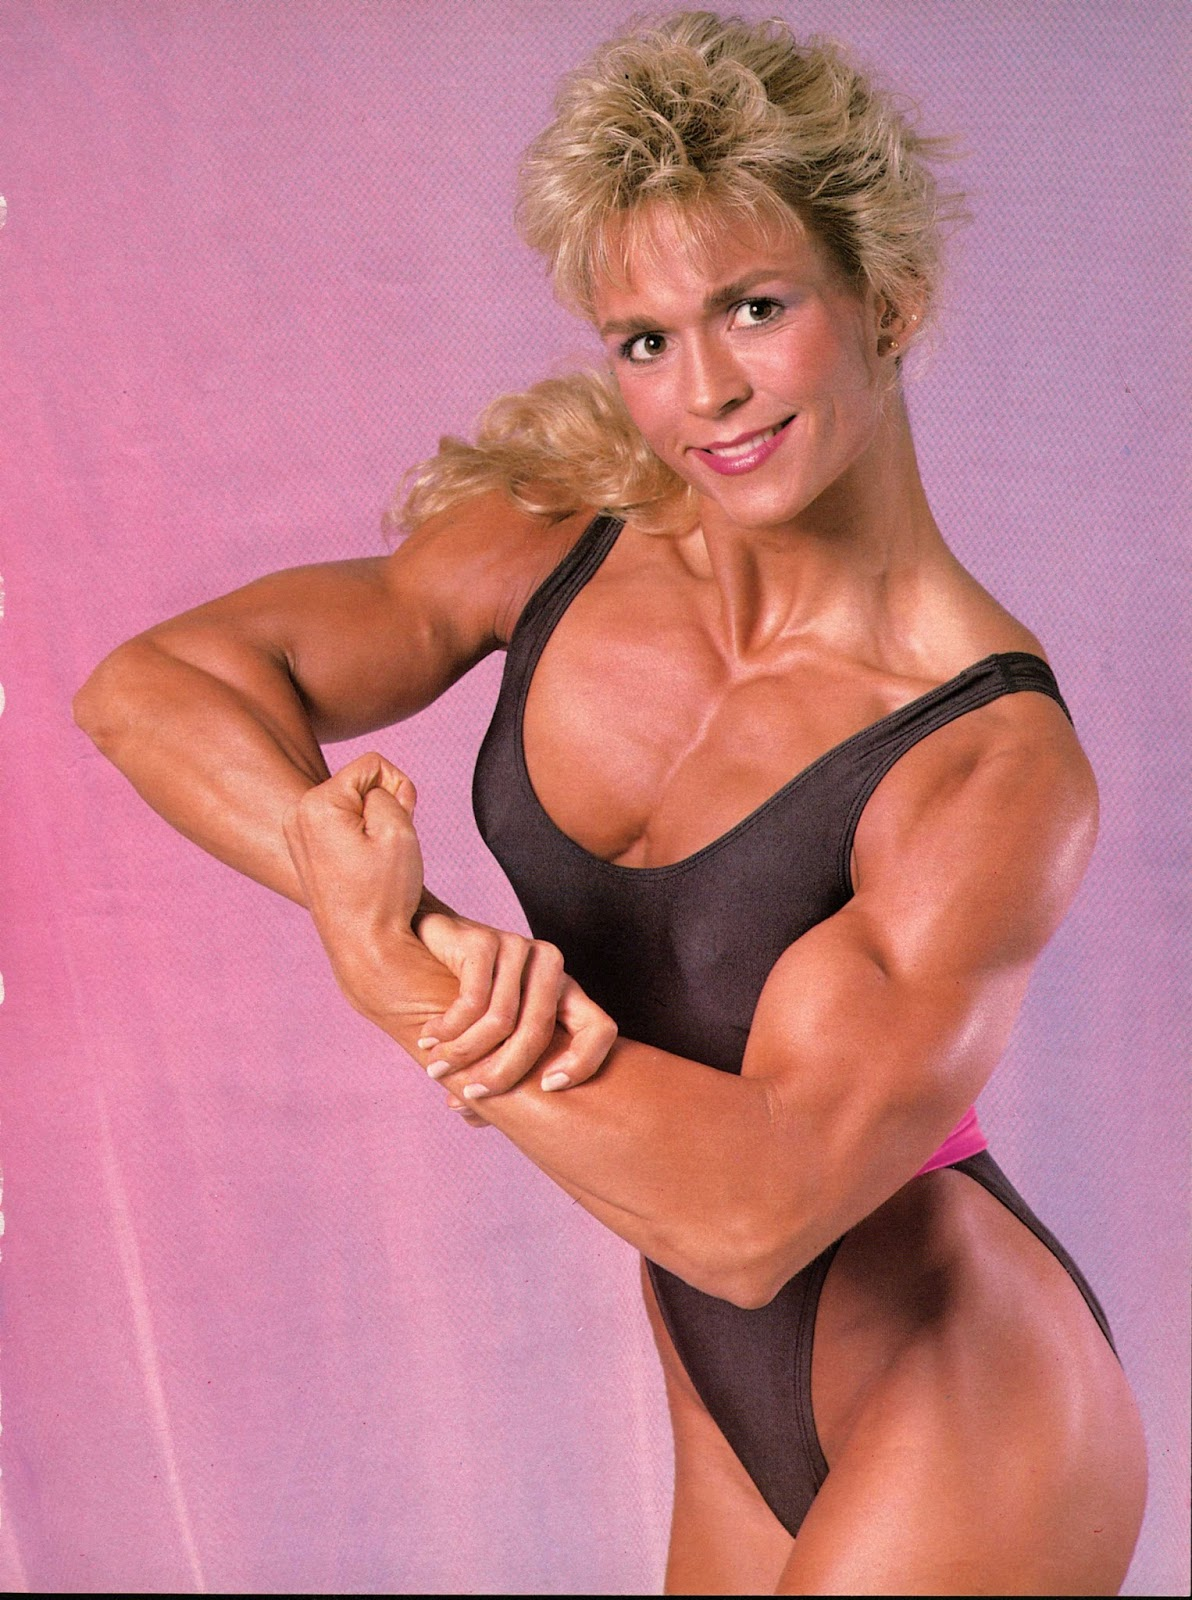 Absolute Hearts: Top 5 Female Body Builders